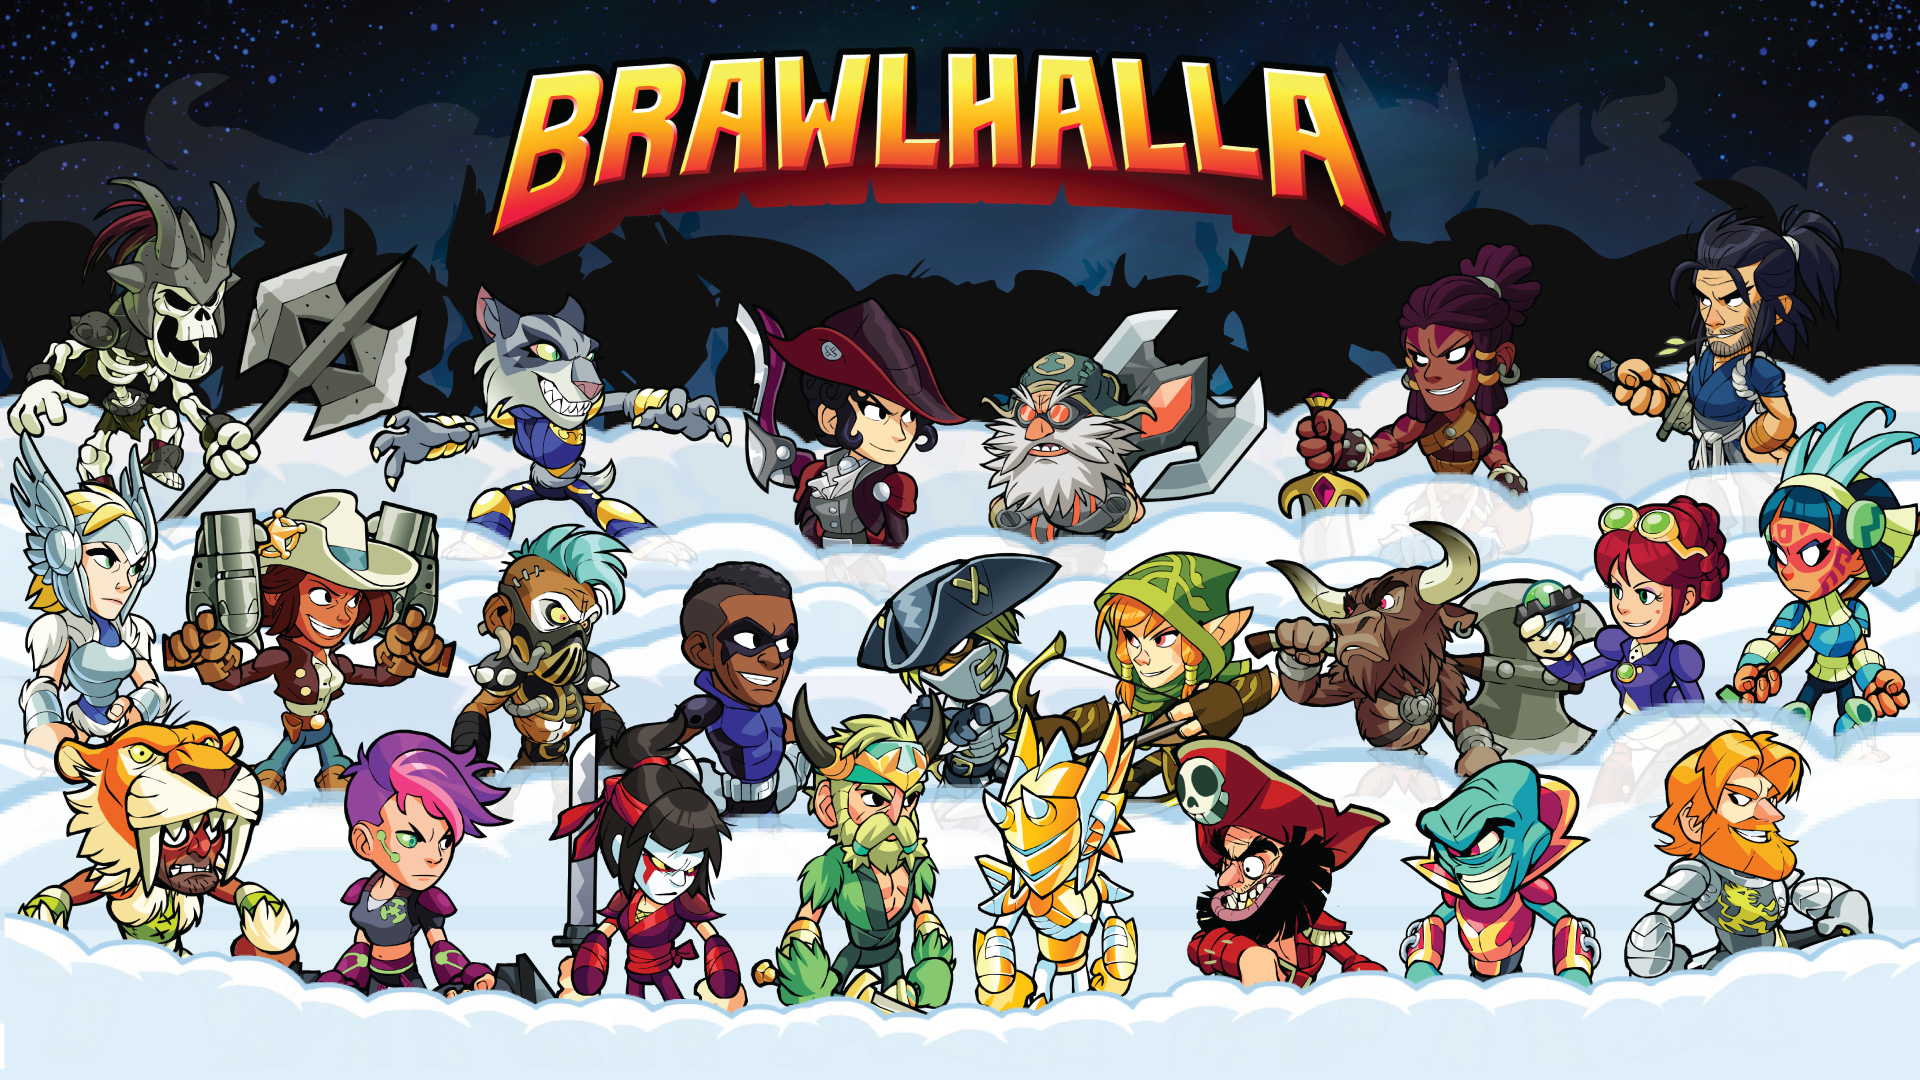 About - Brawlhalla